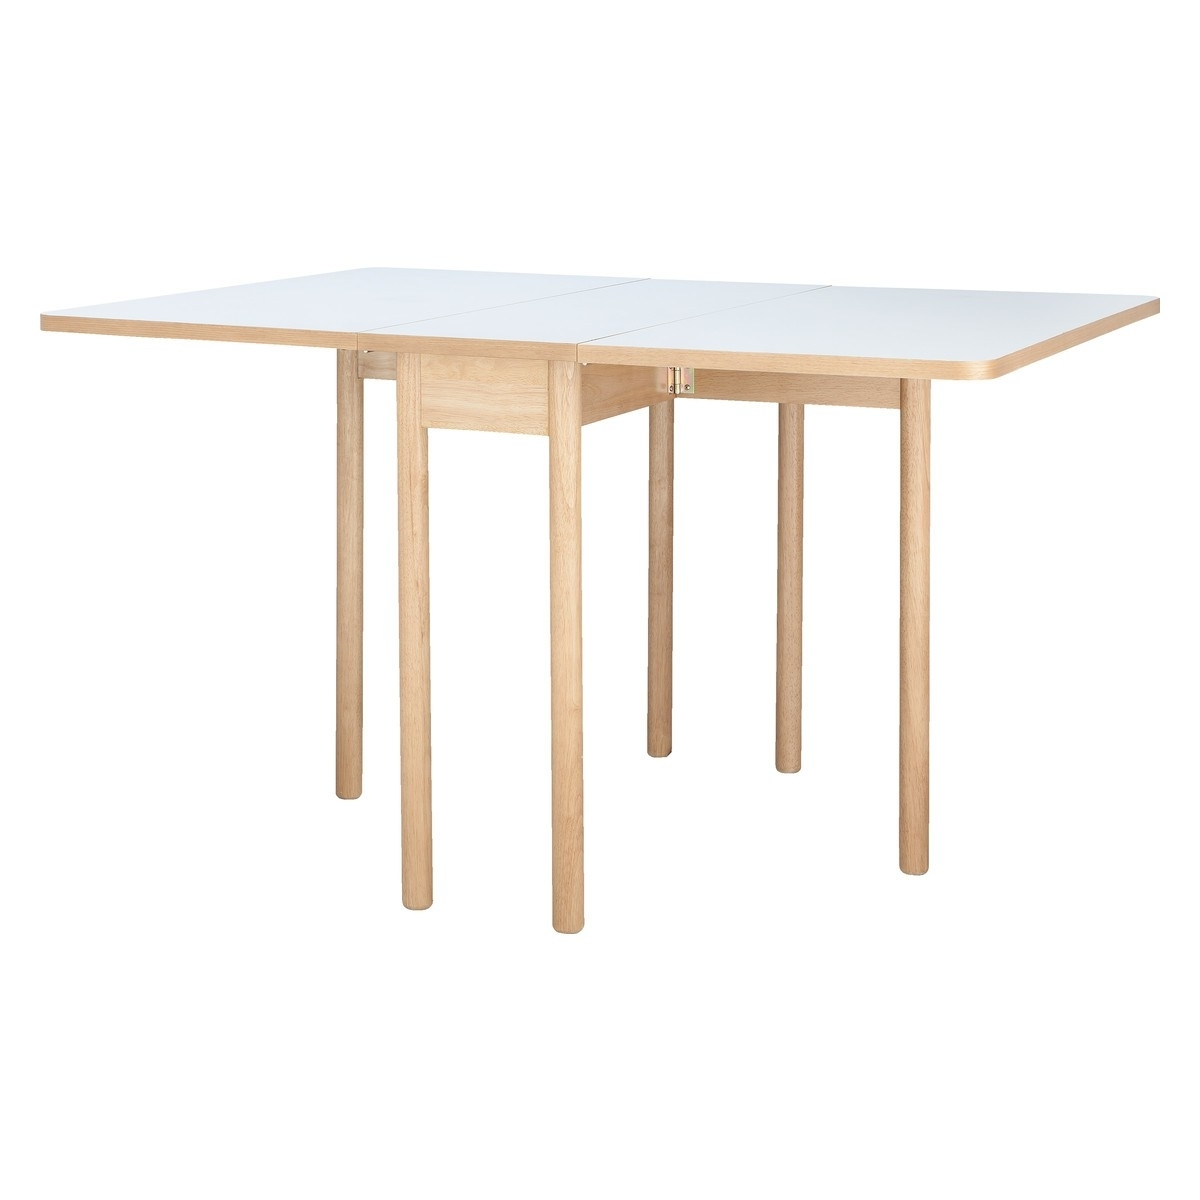 Well Liked Suki 2 6 Seat White Folding Dining Table Regarding Large Folding Dining Tables (View 11 of 25)